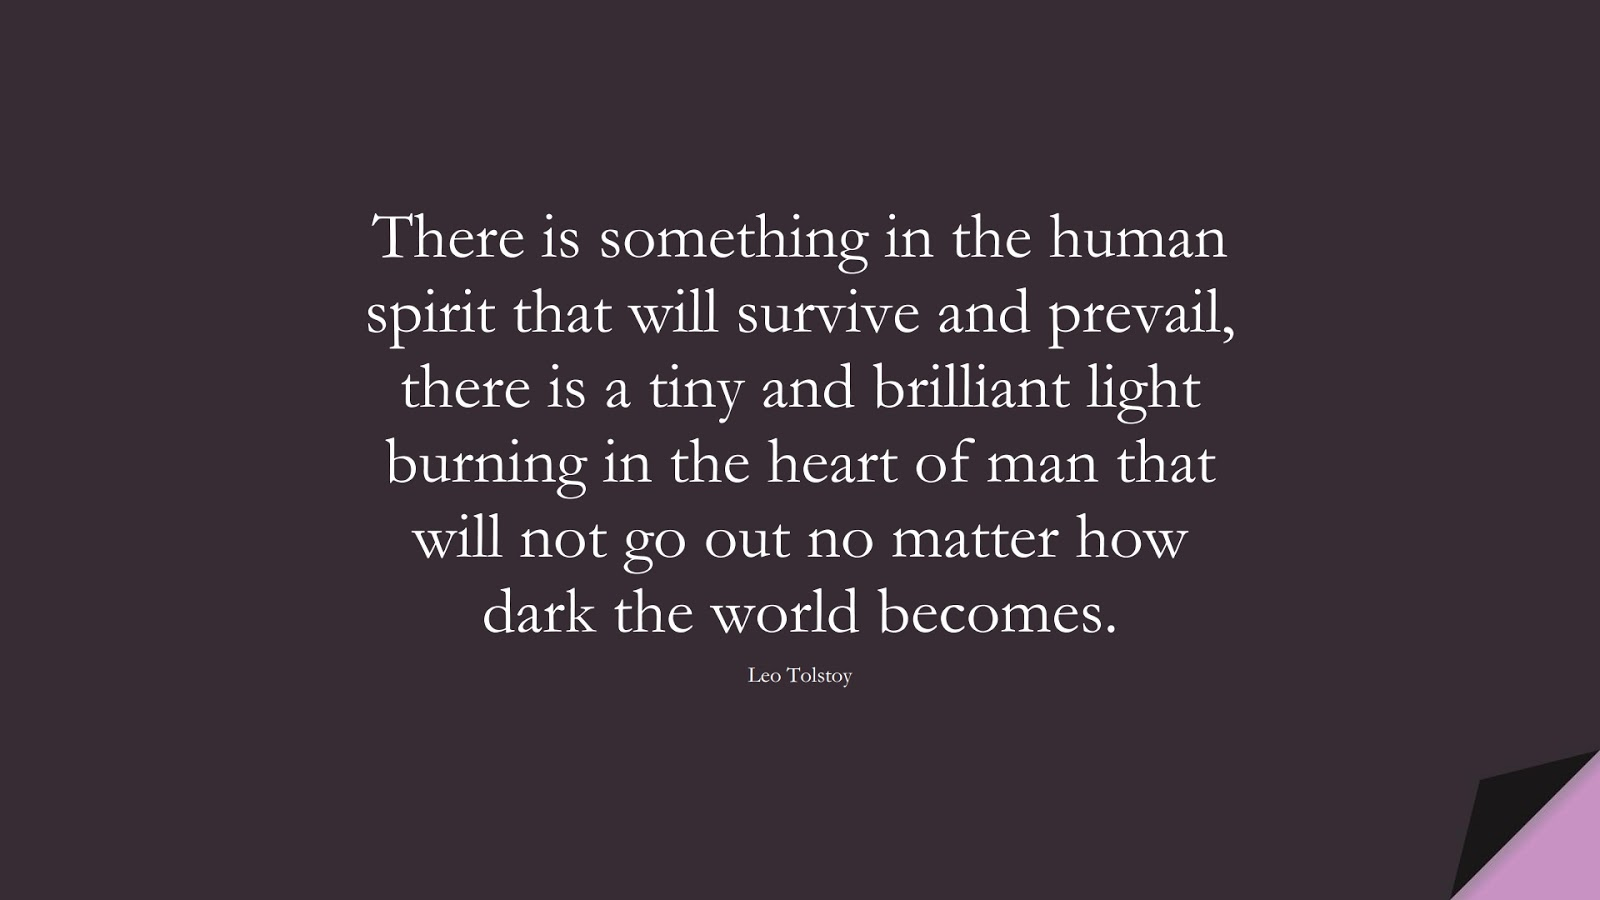 There is something in the human spirit that will survive and prevail, there is a tiny and brilliant light burning in the heart of man that will not go out no matter how dark the world becomes. (Leo Tolstoy);  #NeverGiveUpQuotes